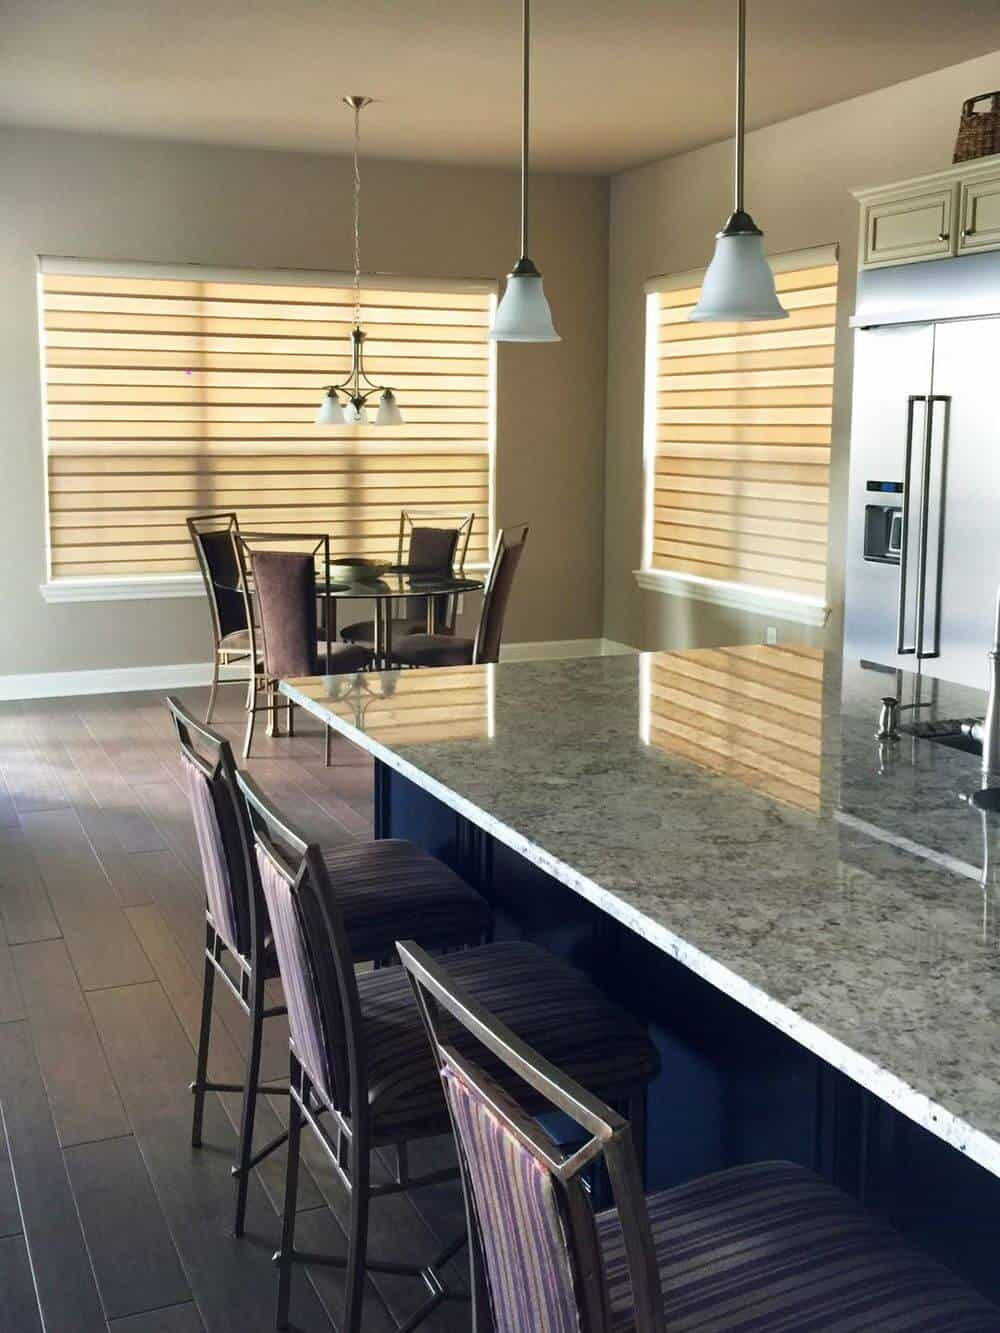 A dine-in kitchen featuring light gray walls and hardwood floors. There's a round dining nook on the side while the kitchen offers a large center island with a breakfast bar.